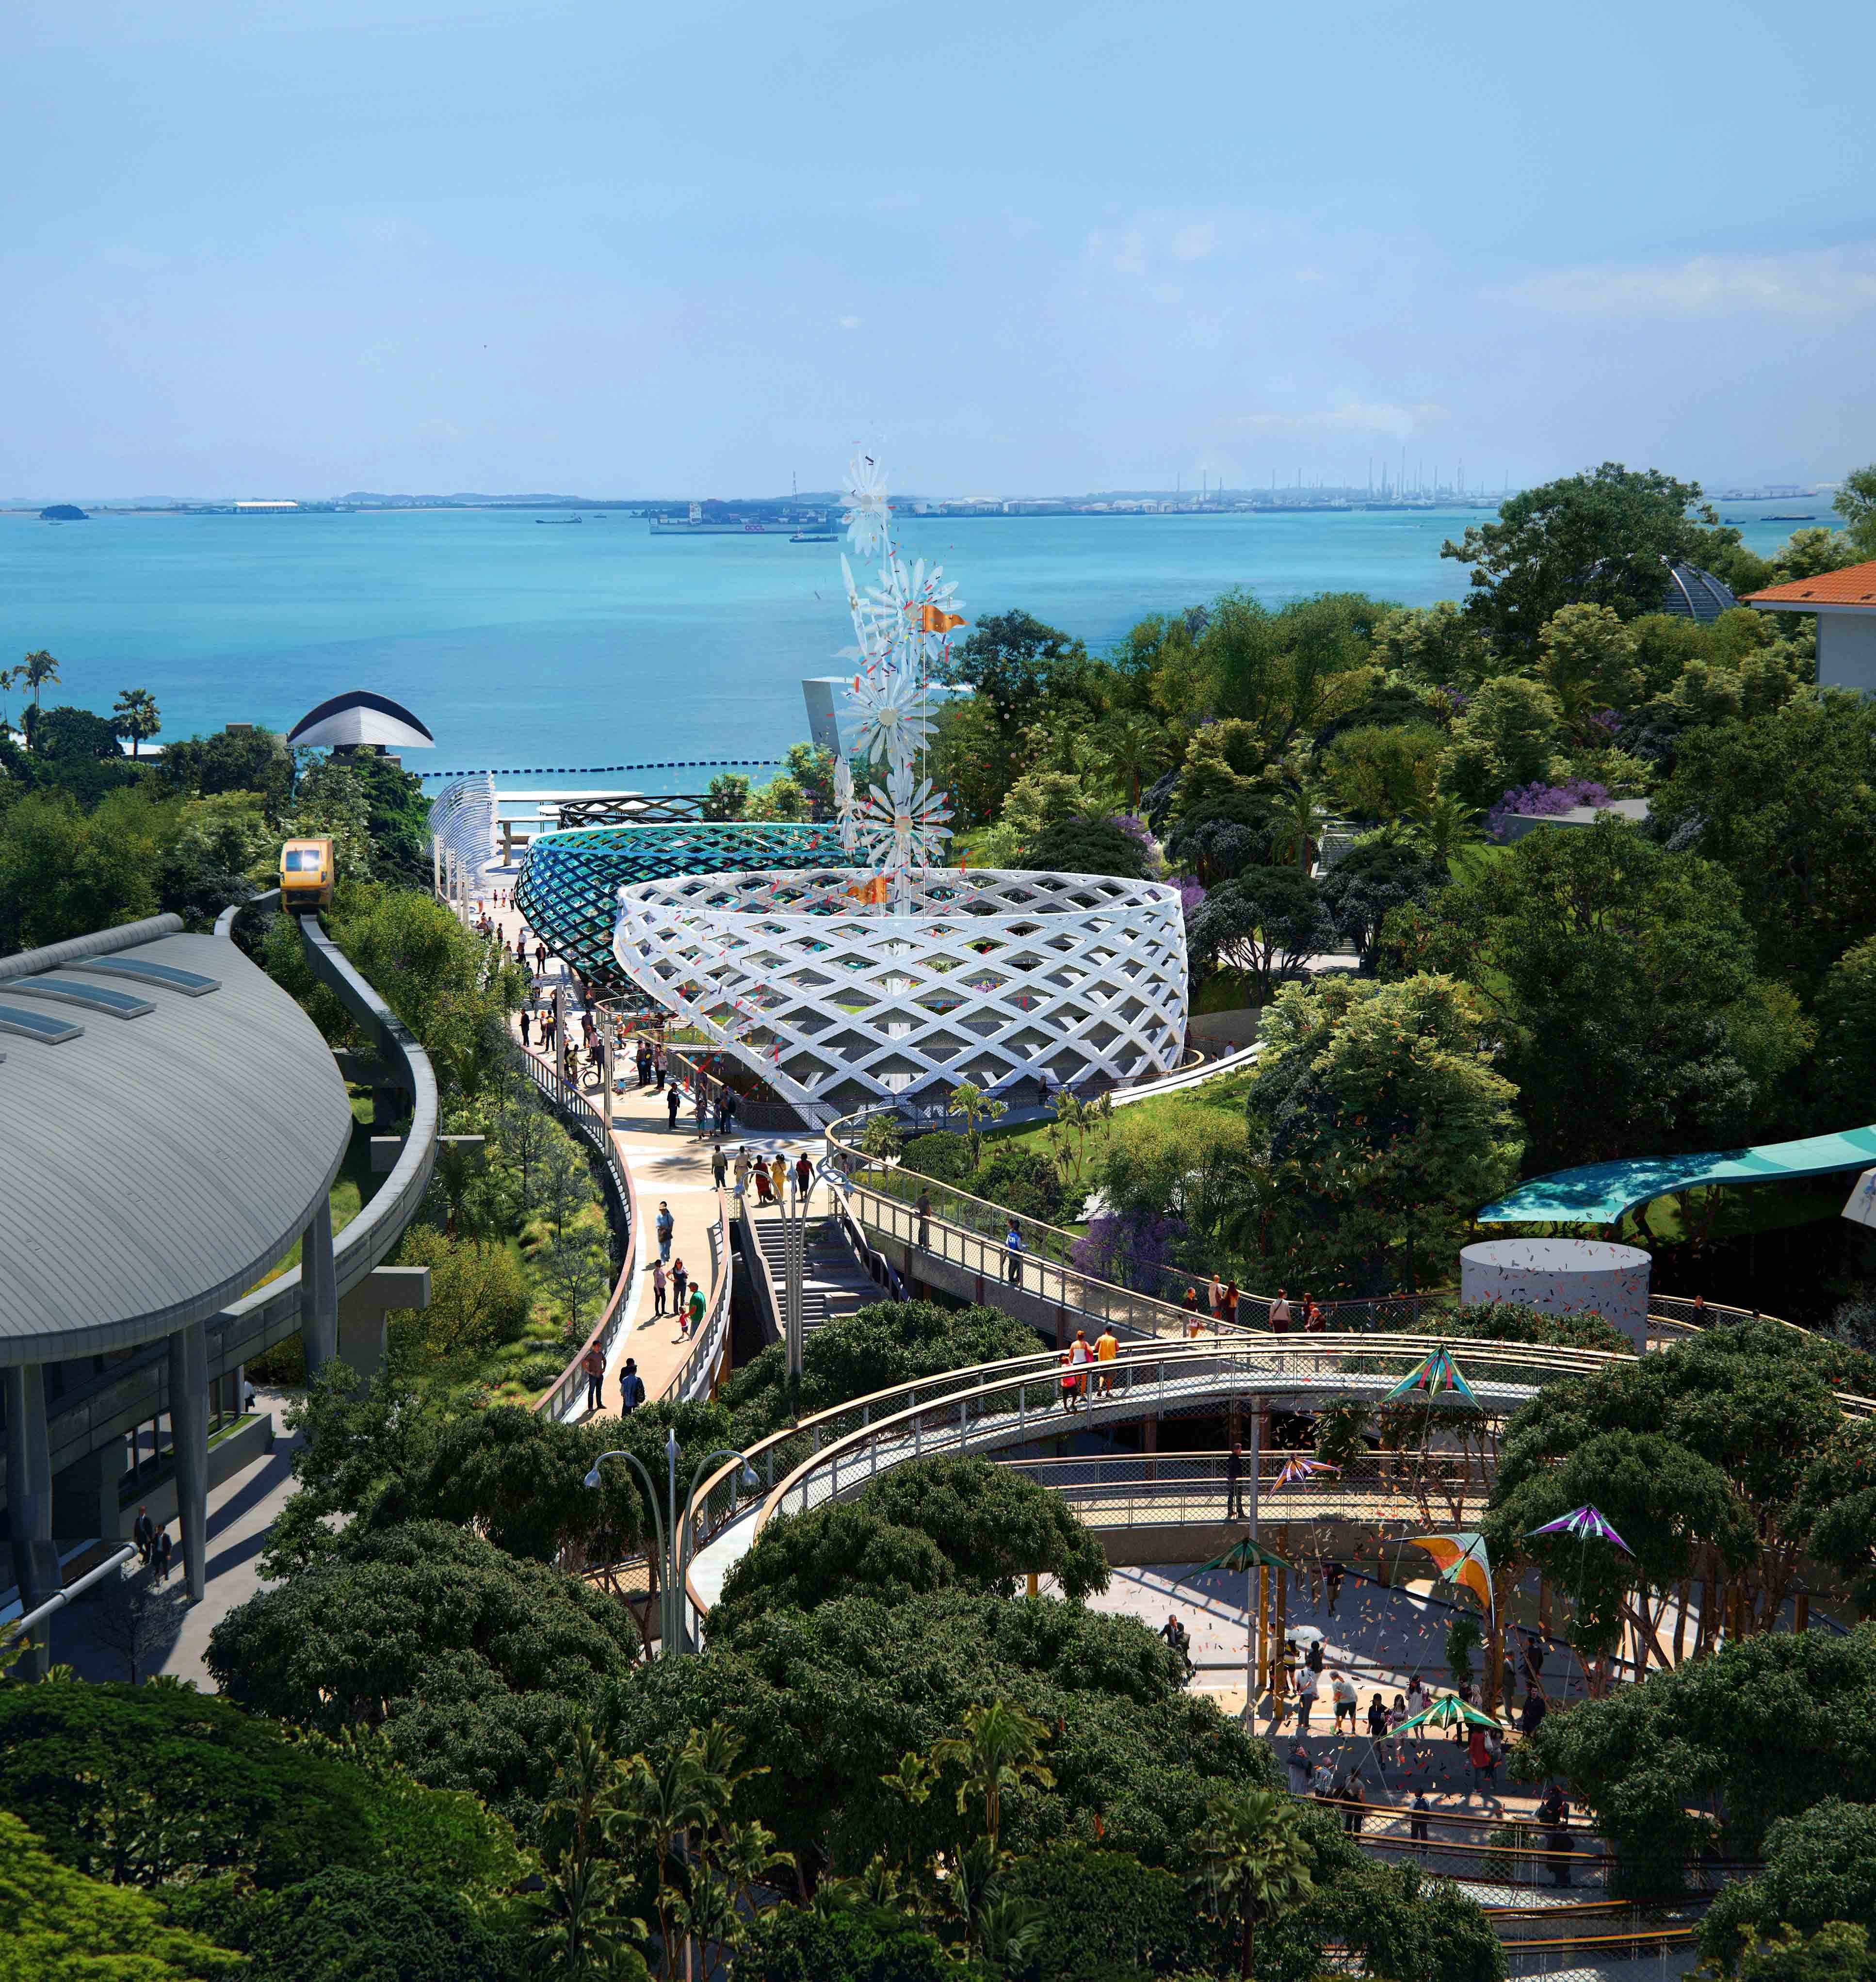 artist-s-impression-featuring-a-bird-s-eye-view--day--of-sentosa-sensoryscape